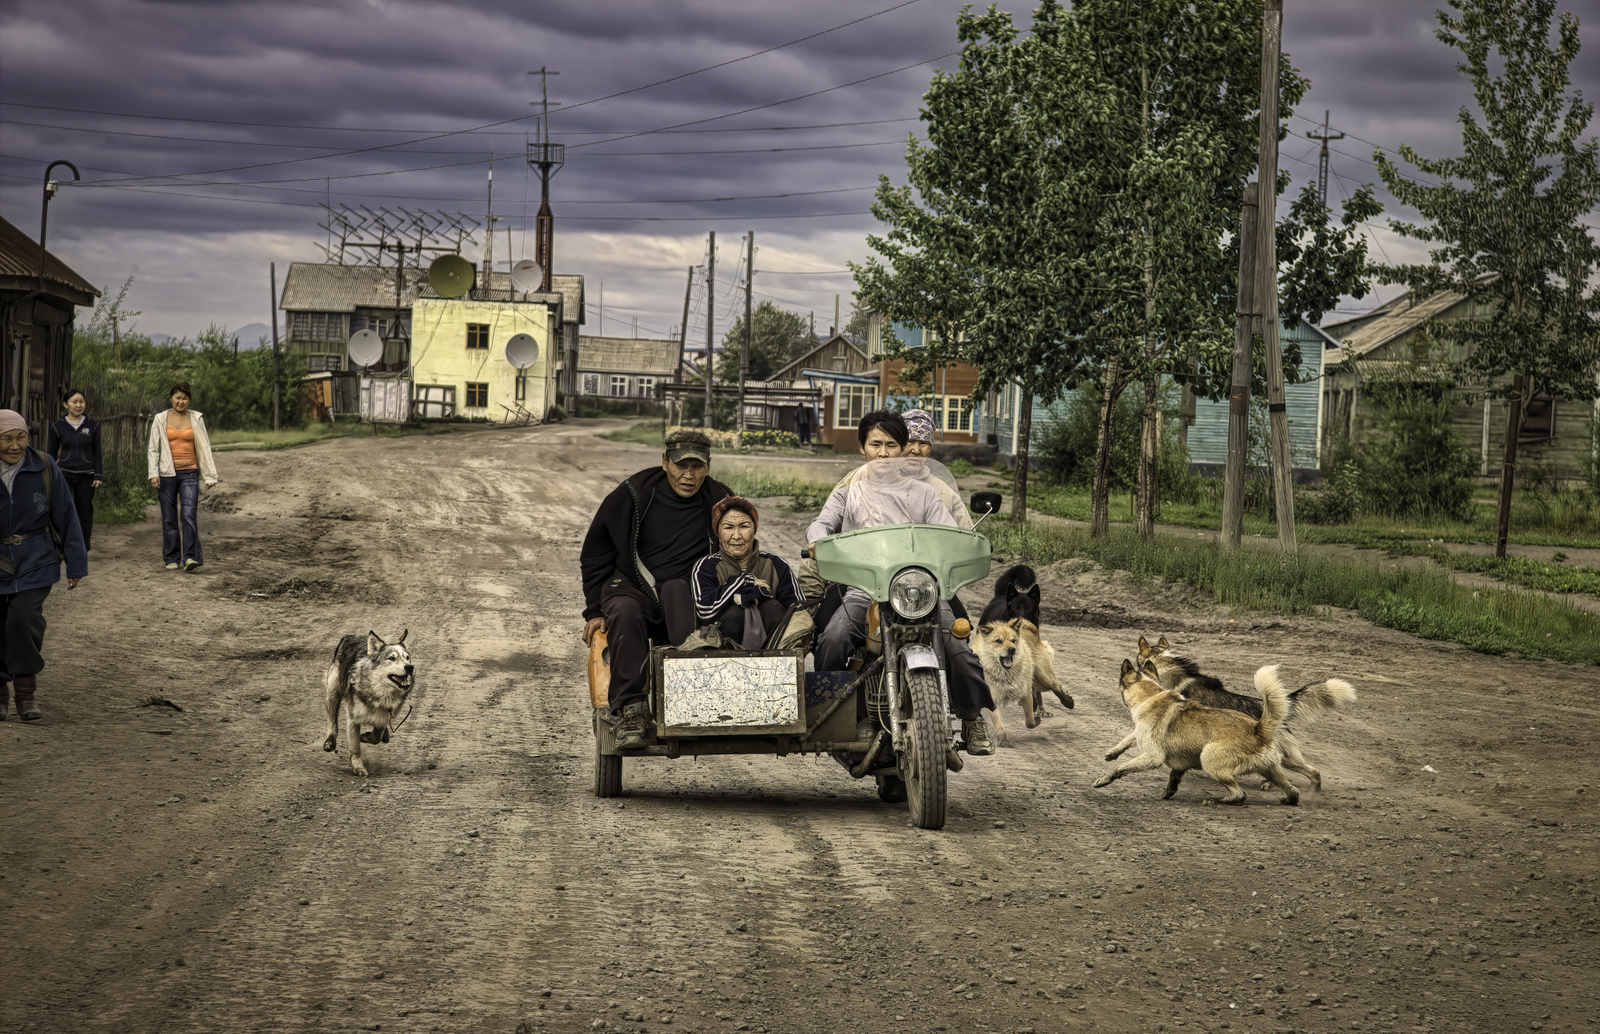 Motorcycle with Sidecar in Russia